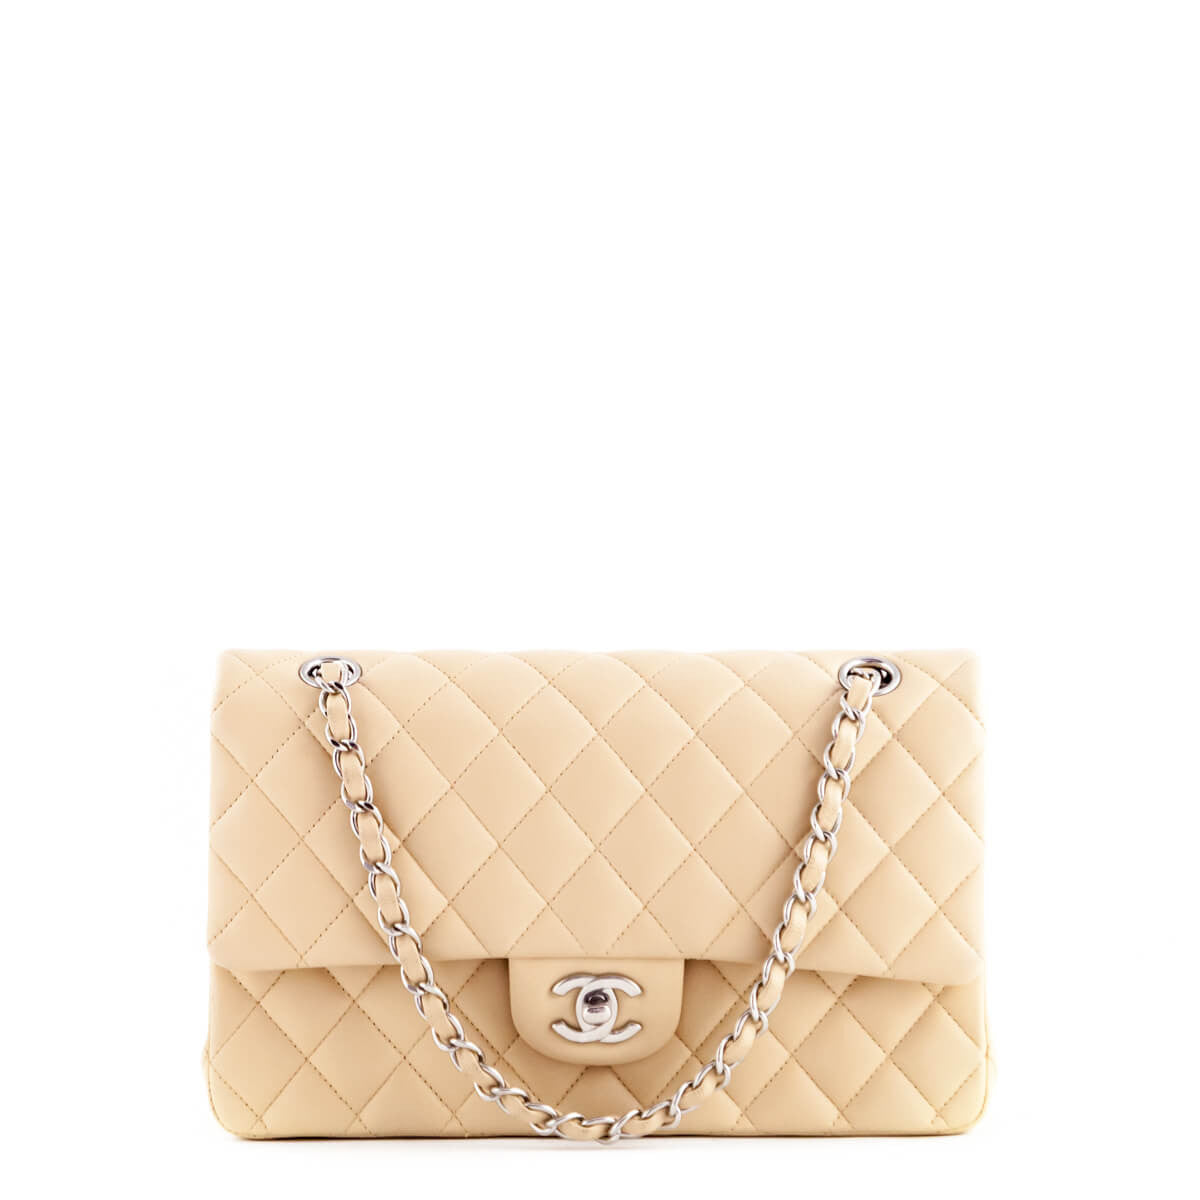 5489c5f3a9eee Chanel Beige Lambskin Medium Double Flap SHW - LOVE that BAG - Preowned  Authentic Designer Handbags ...